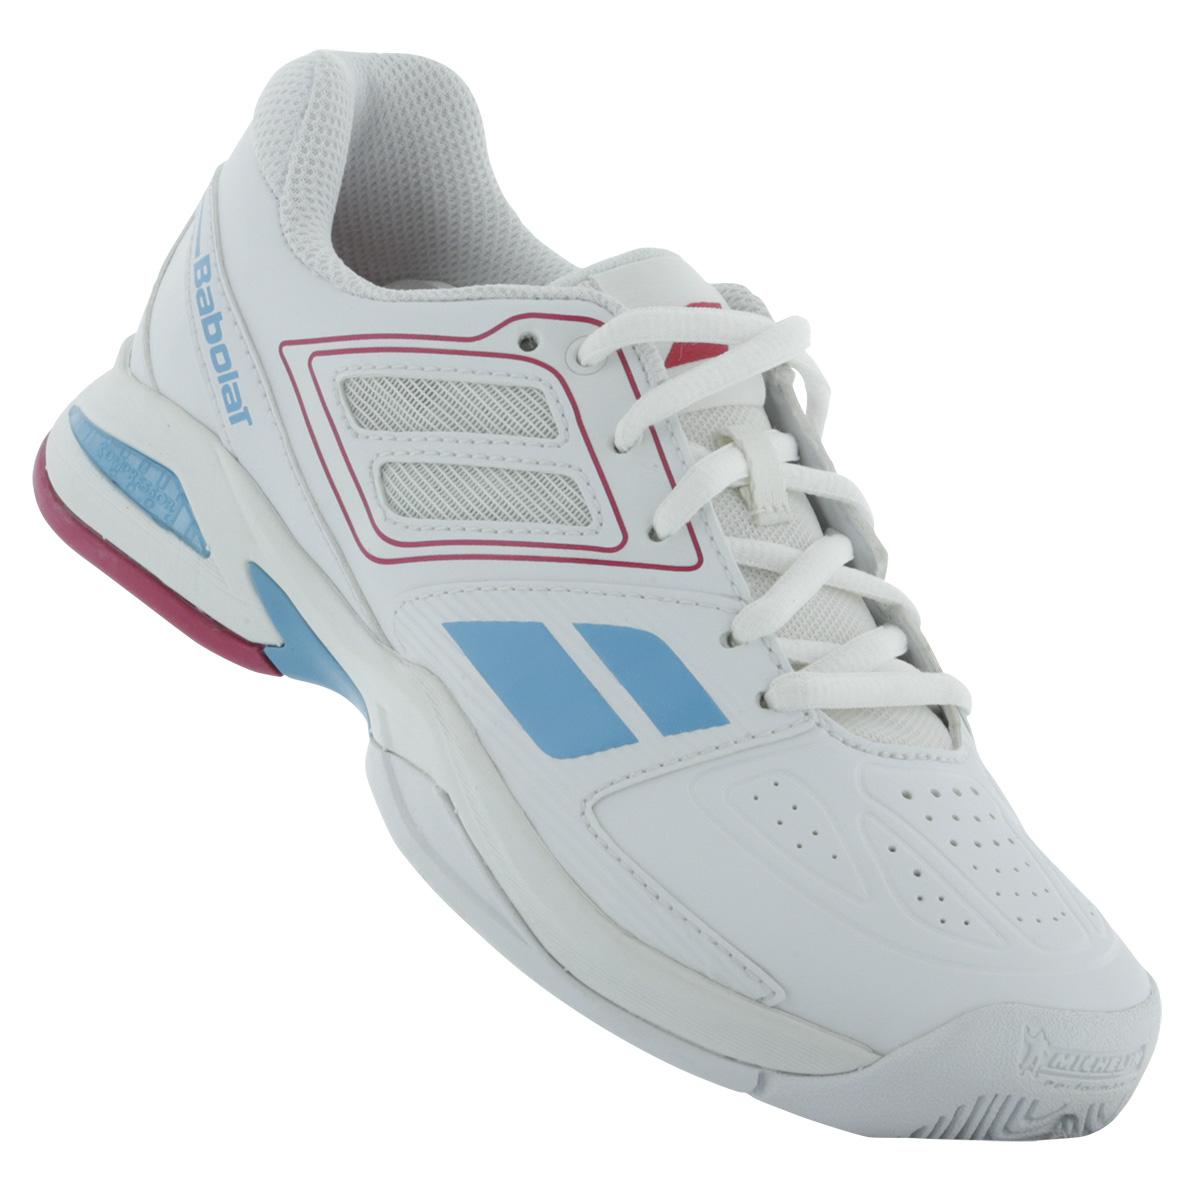 Babolat Tennis Shoes Online India